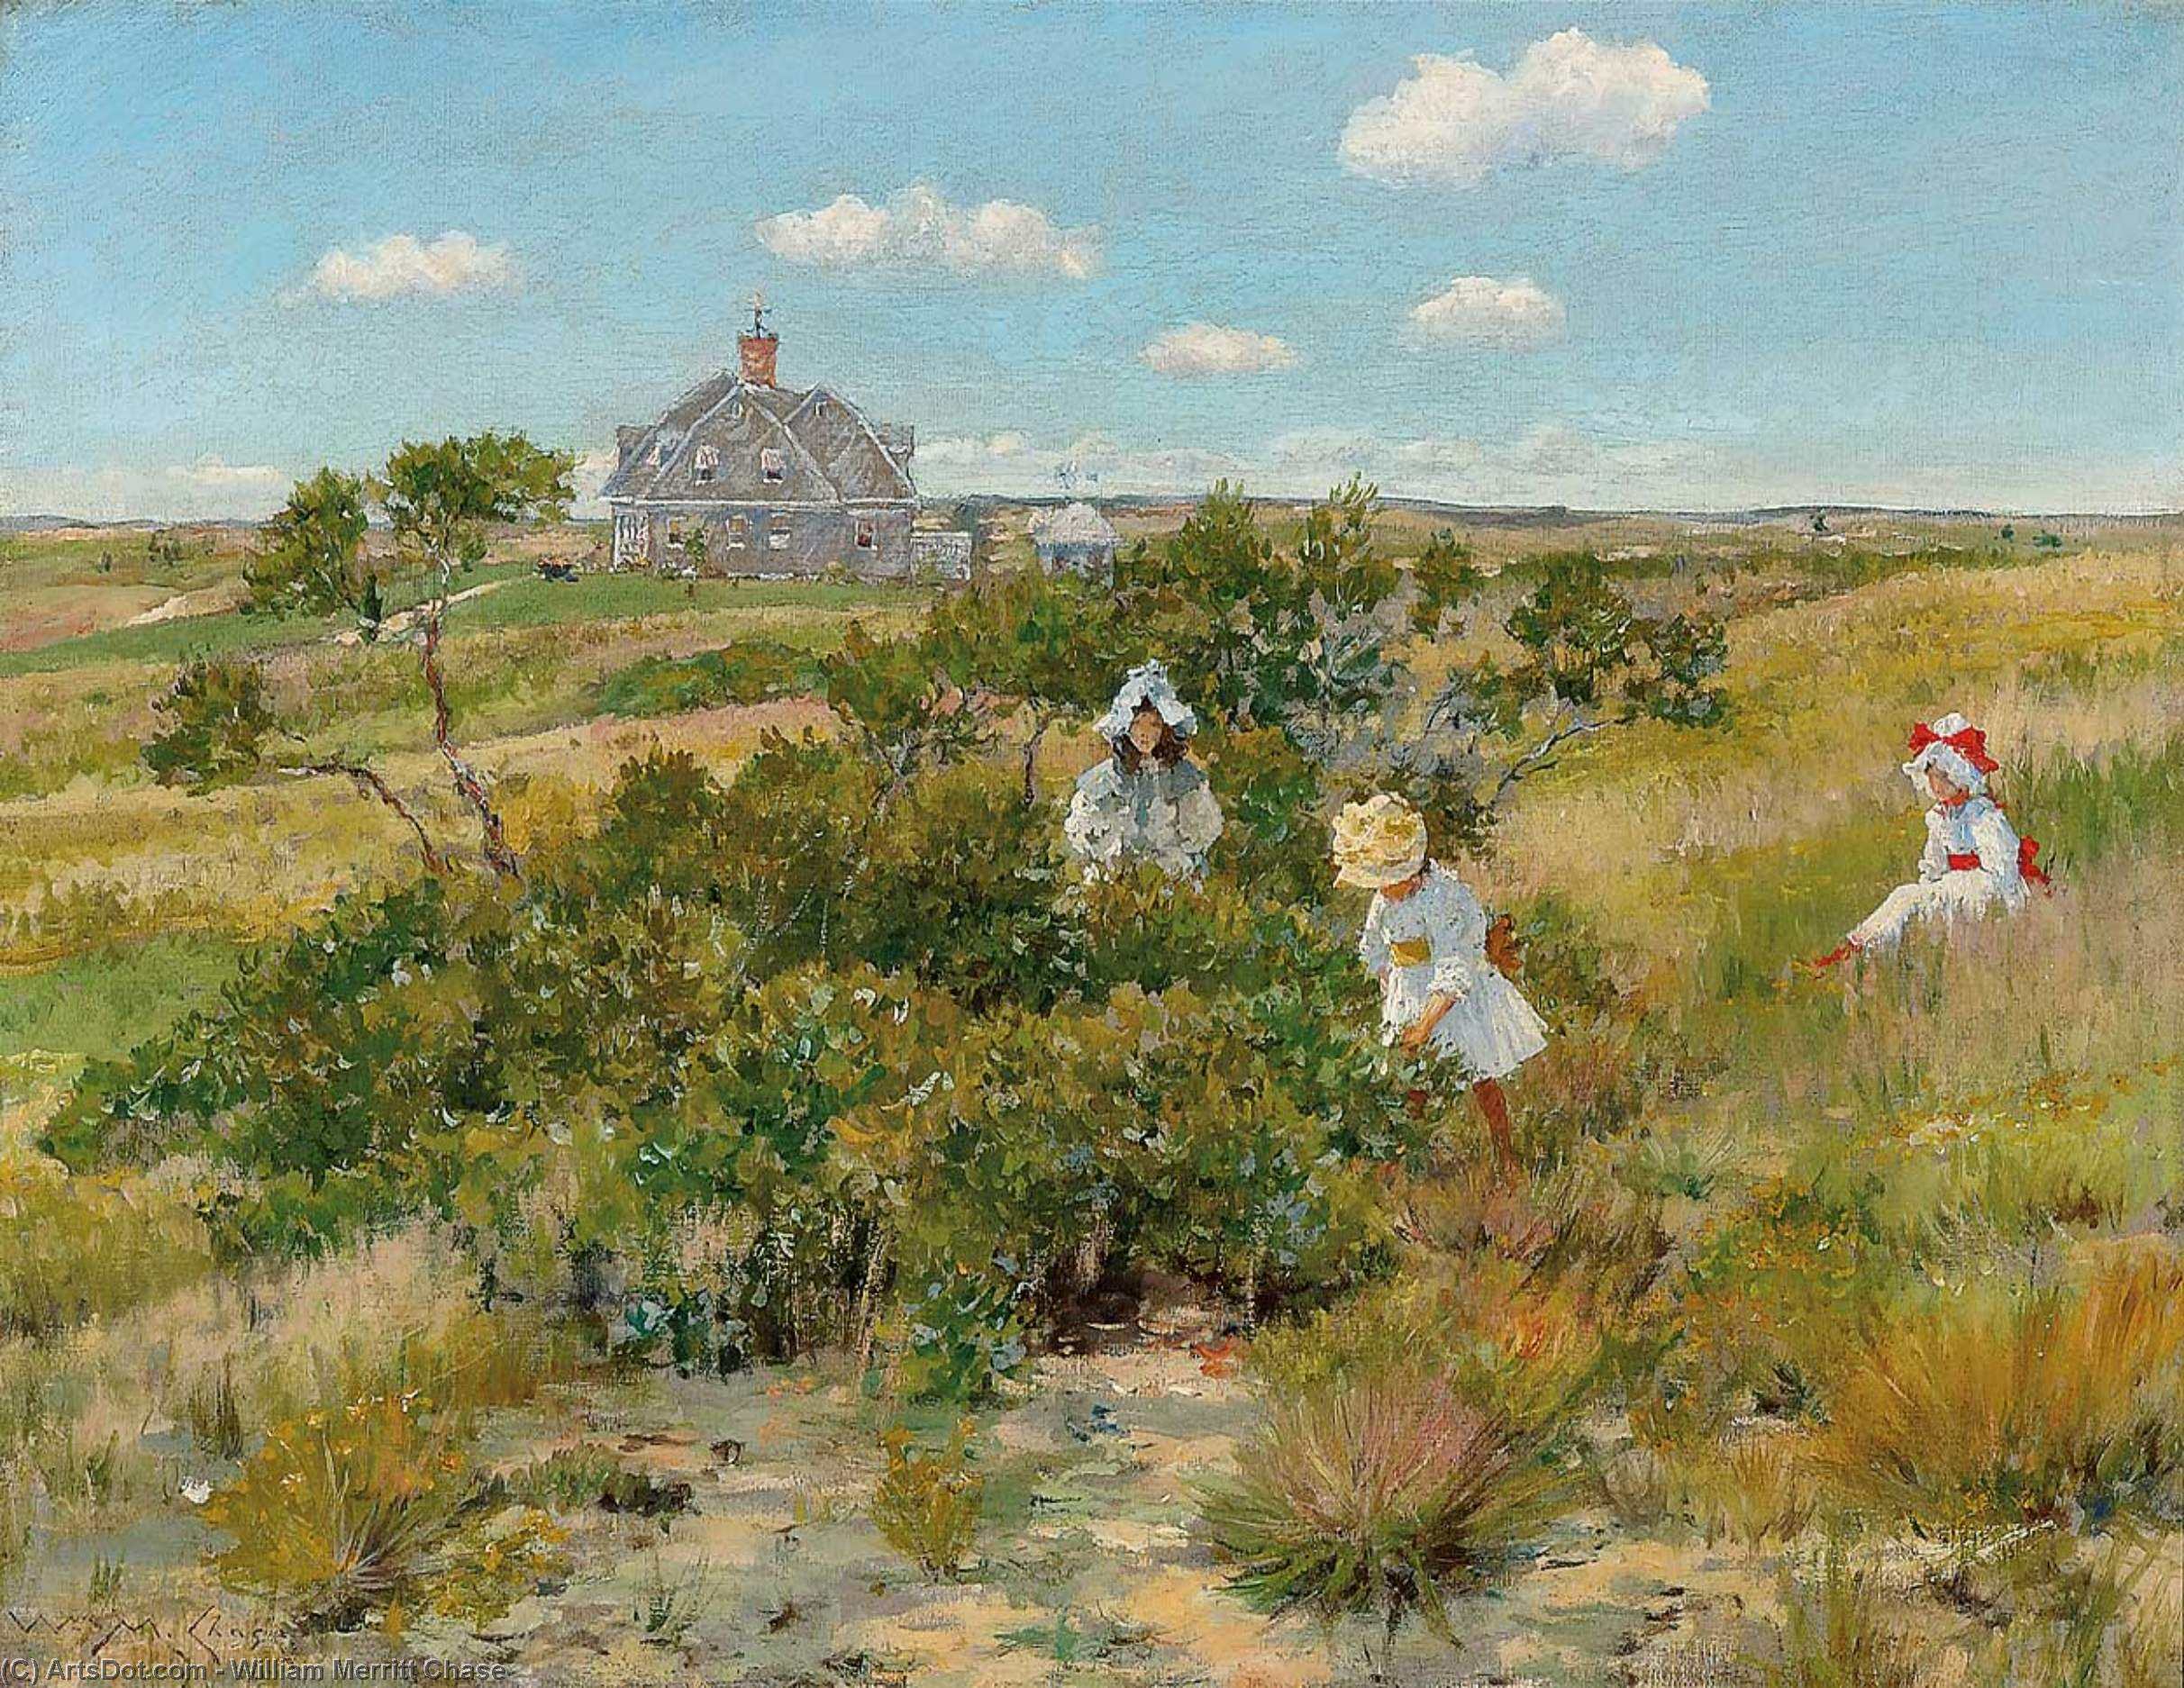 a sommer tag, pastell von William Merritt Chase (1849-1916, United States)